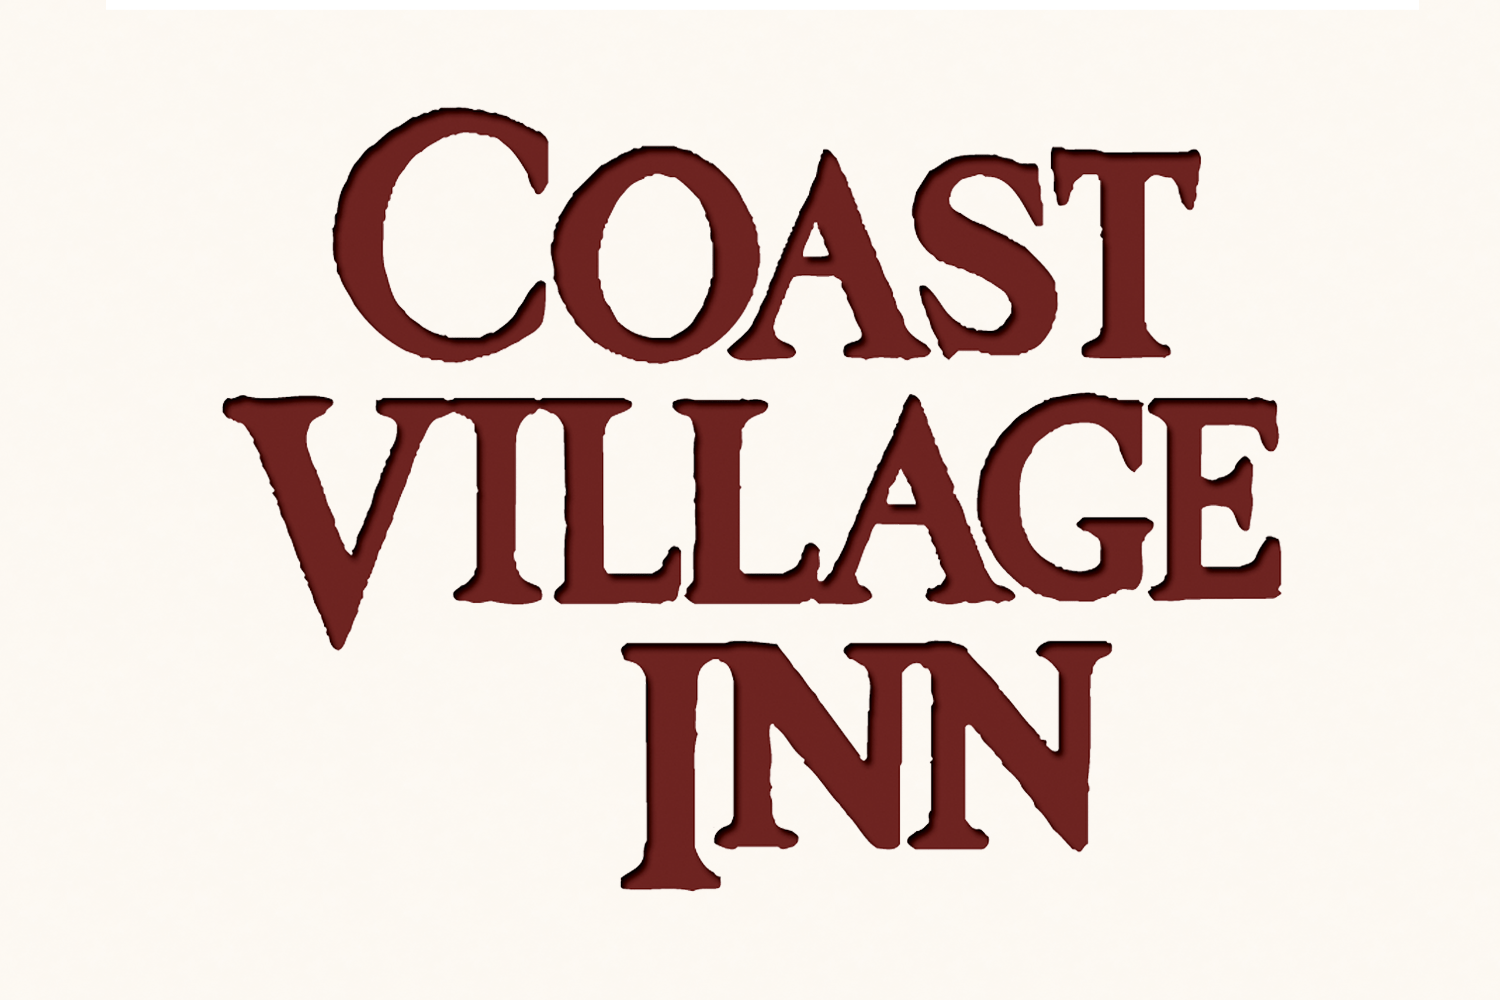 Coast Village Inn